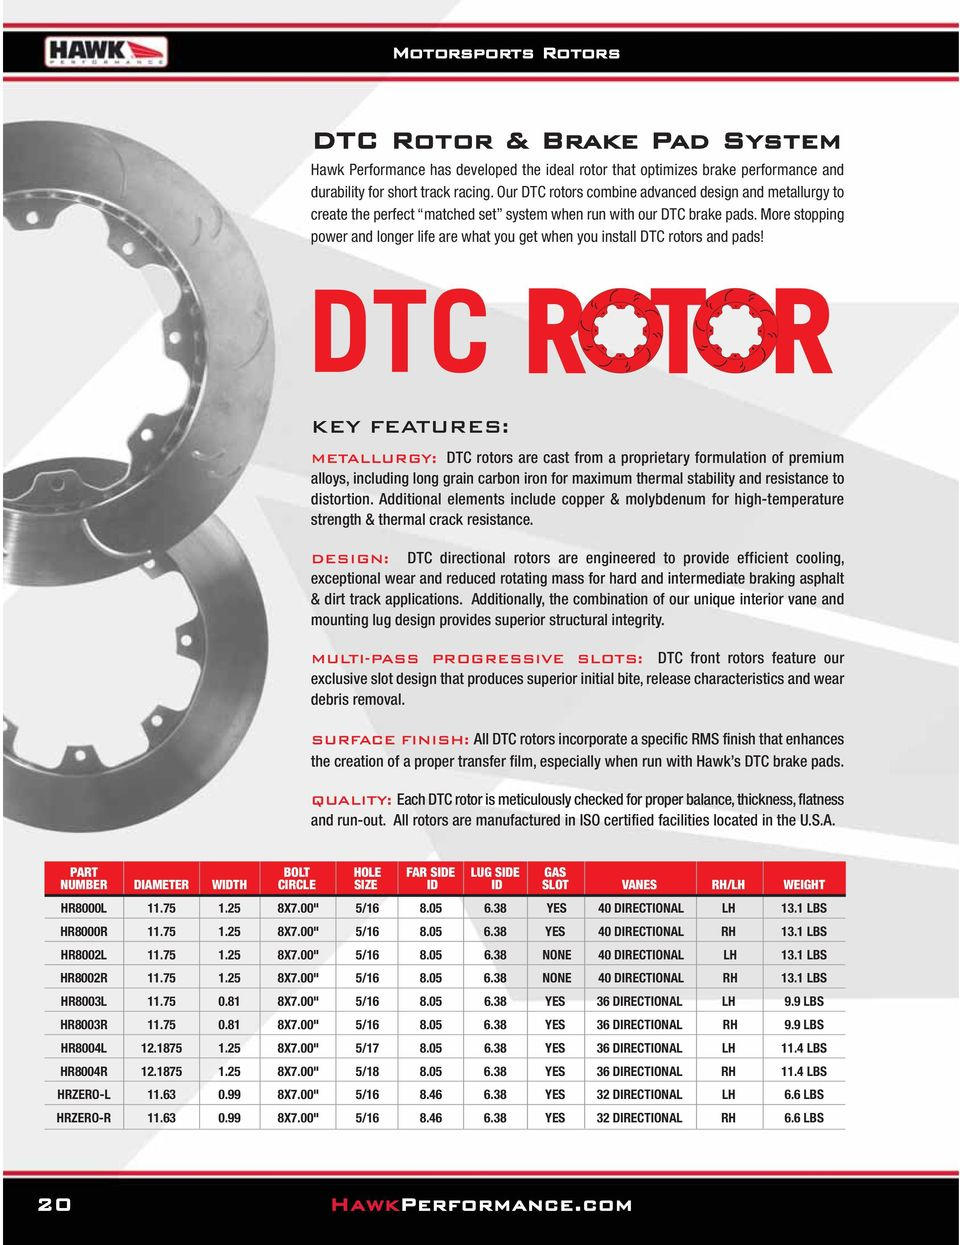 More stopping power and longer life are what you get when you install DTC rotors and pads!